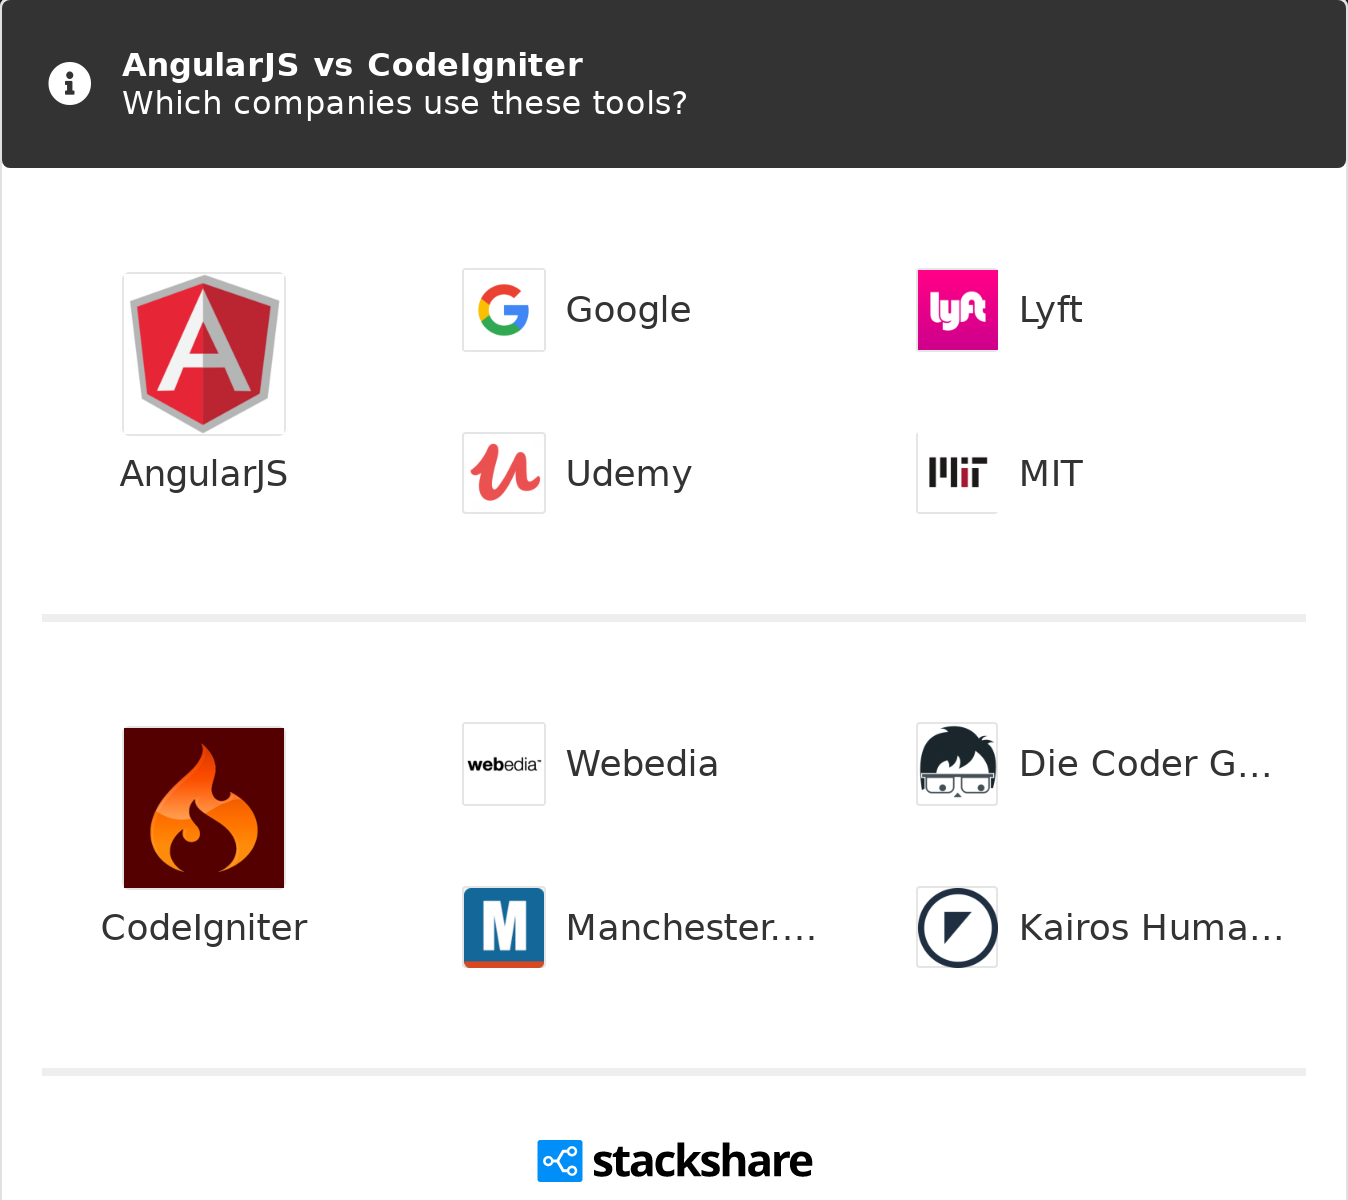 AngularJS vs CodeIgniter | What are the differences?